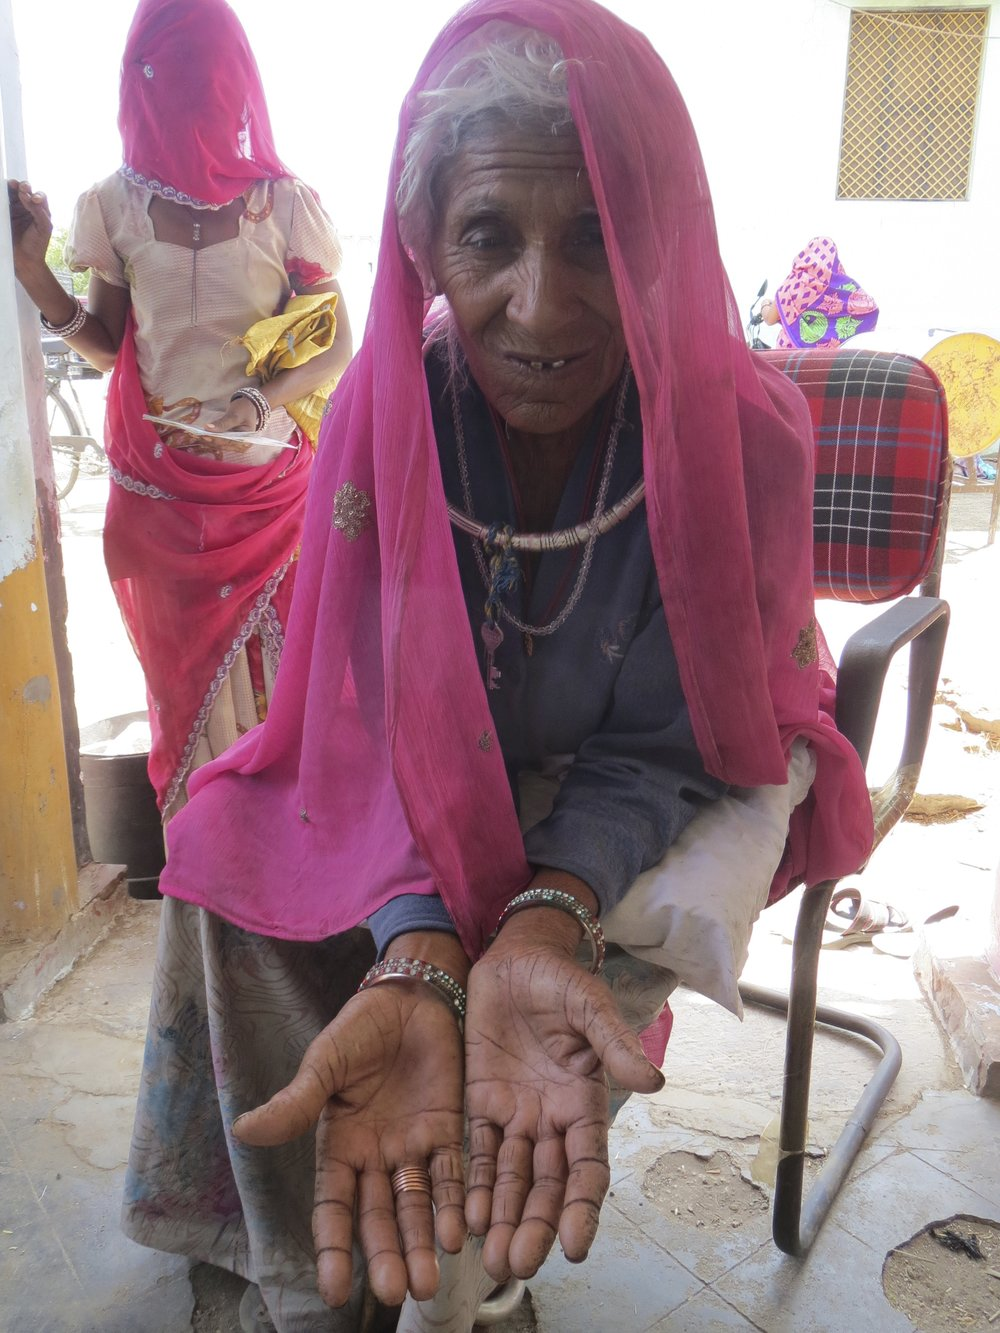 Hanja Devi, a ration card holder in Daulatpura in Ajmer, Rajasthan had made three trips that month to the ration shop in an effort to get her fingrprints authenticated in Aadhaar. Her fingerprints mismatch repeatedly.